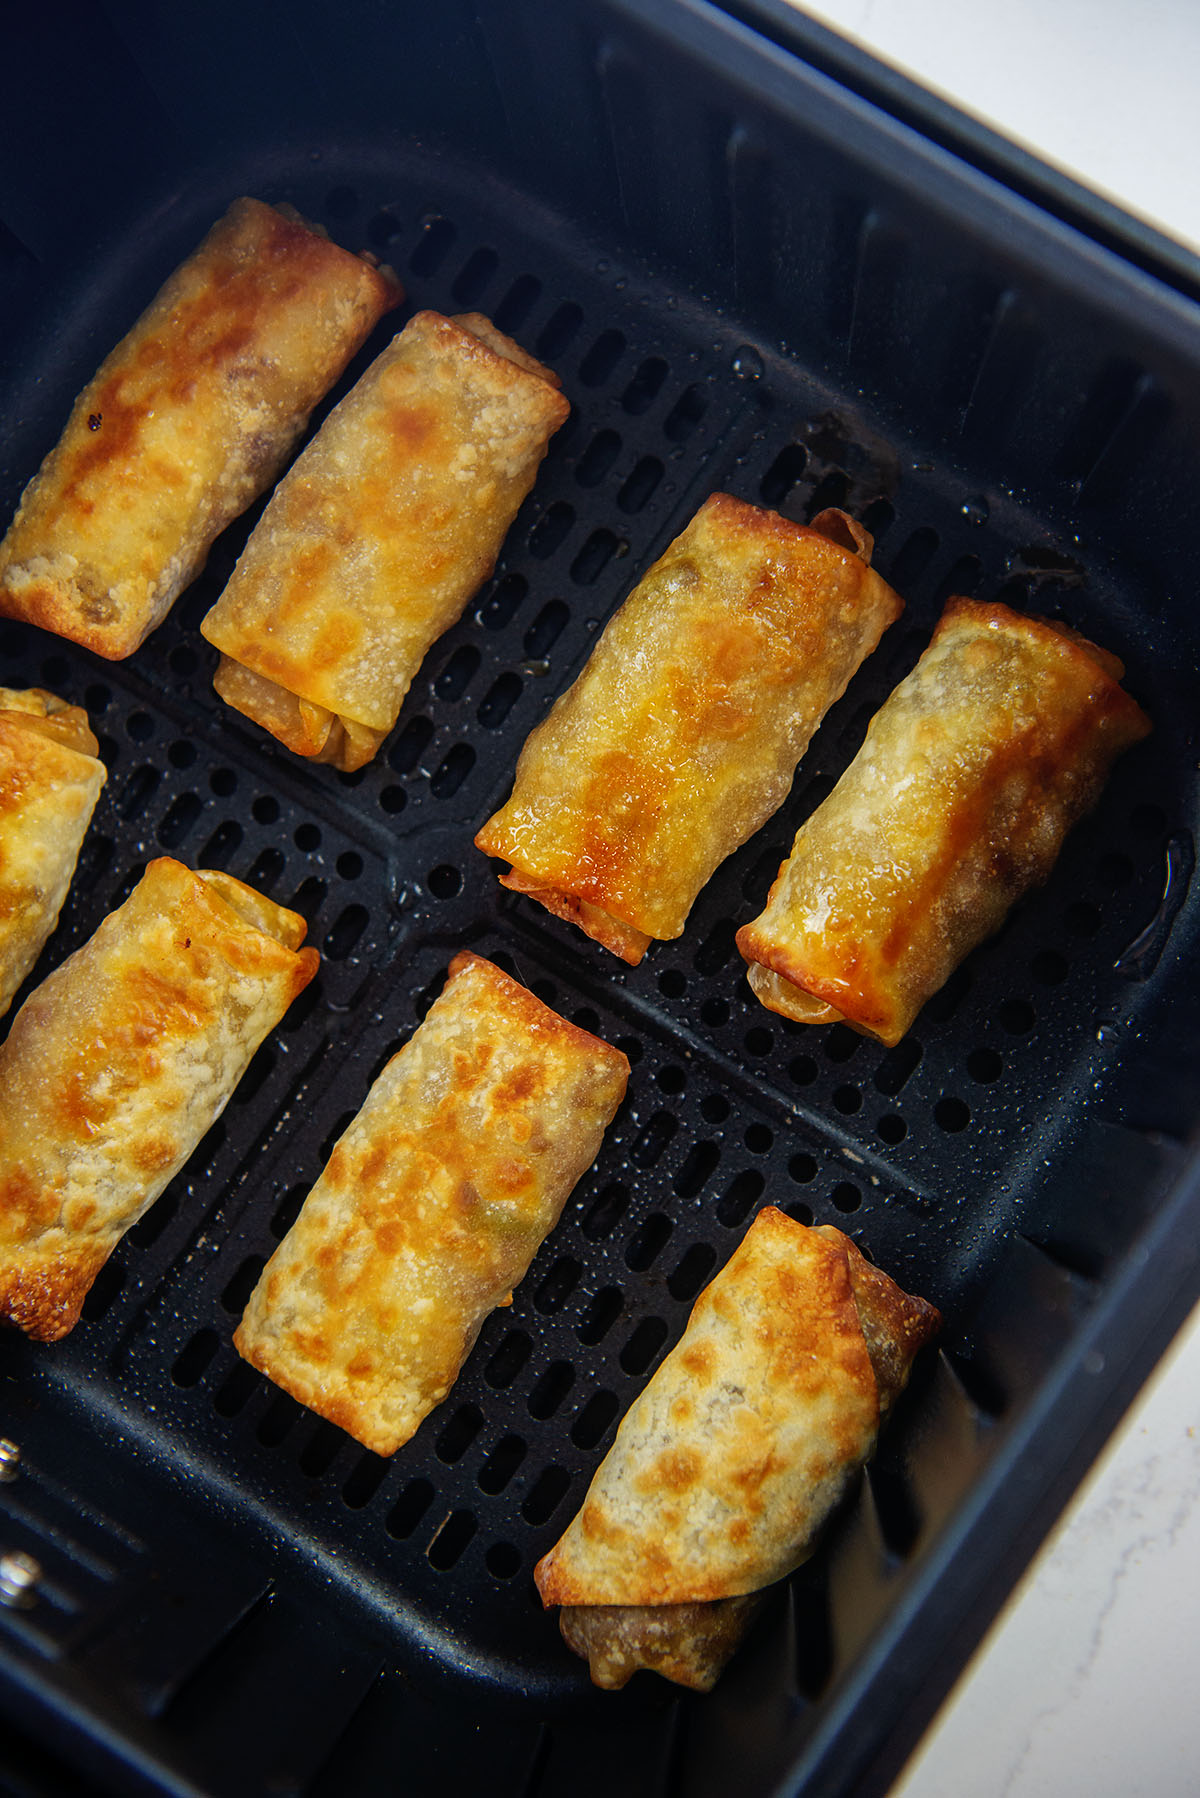 Eight egg rolls lined up in an air fryer basket